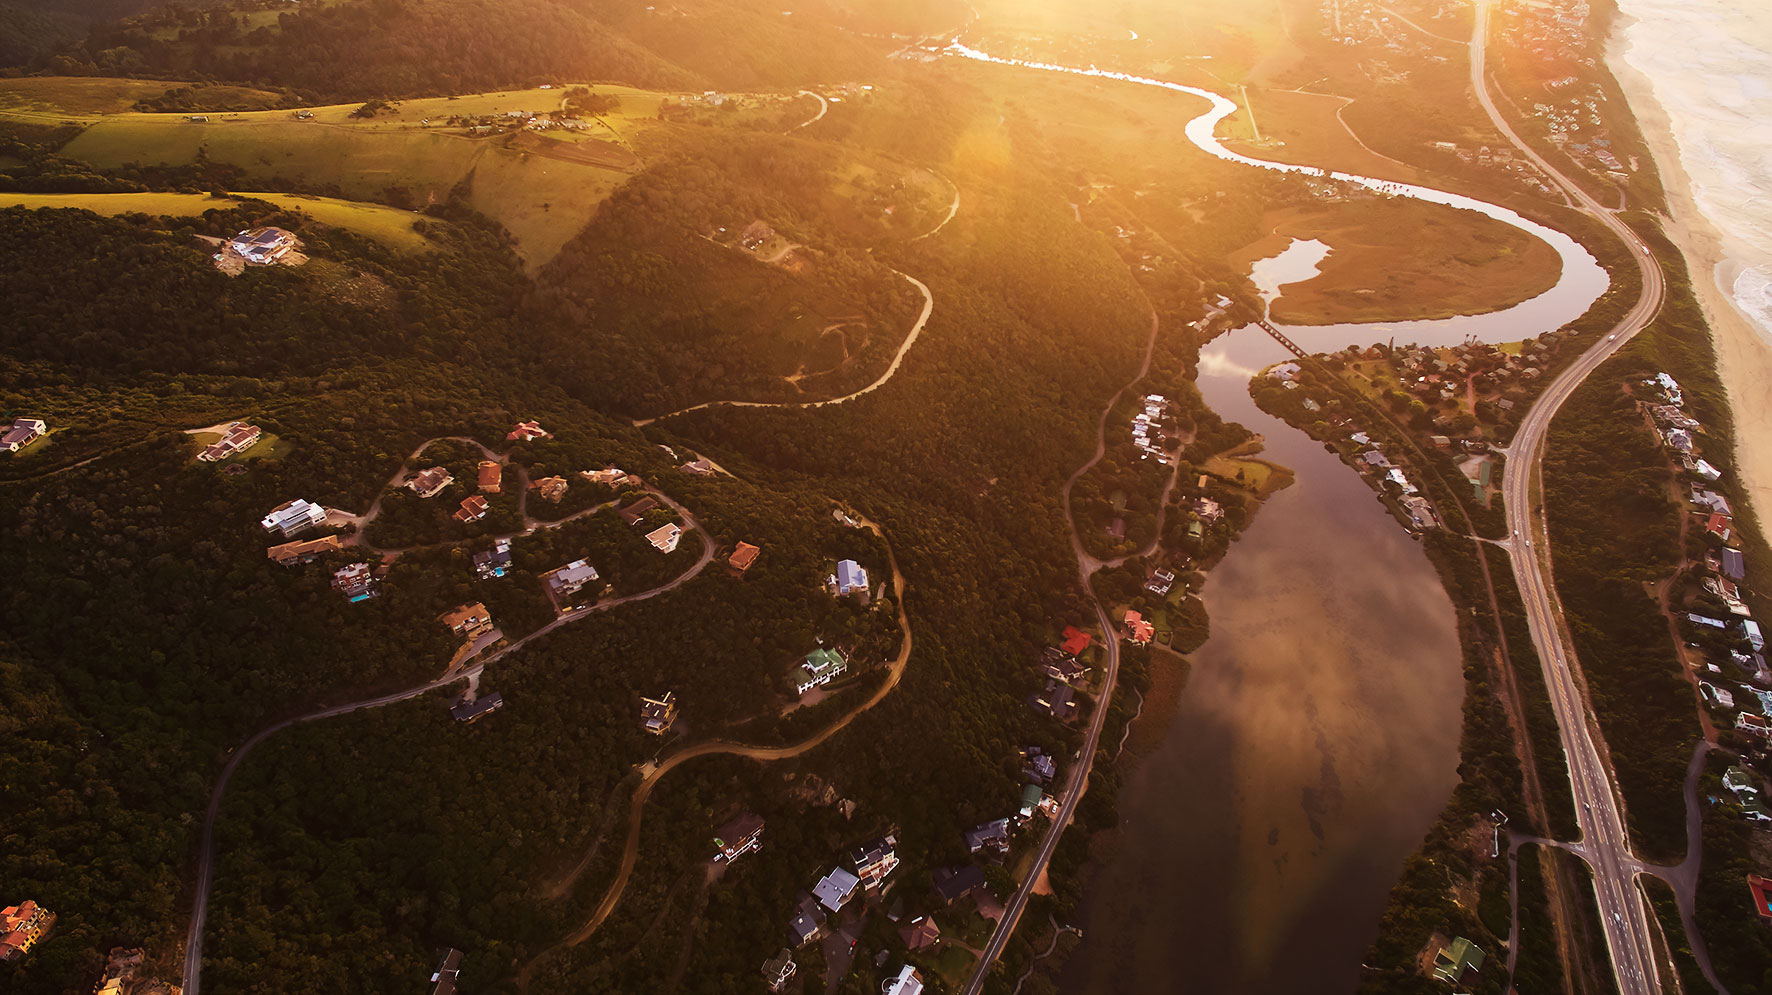 wilderness lifestyle dji sunrise river hills contours